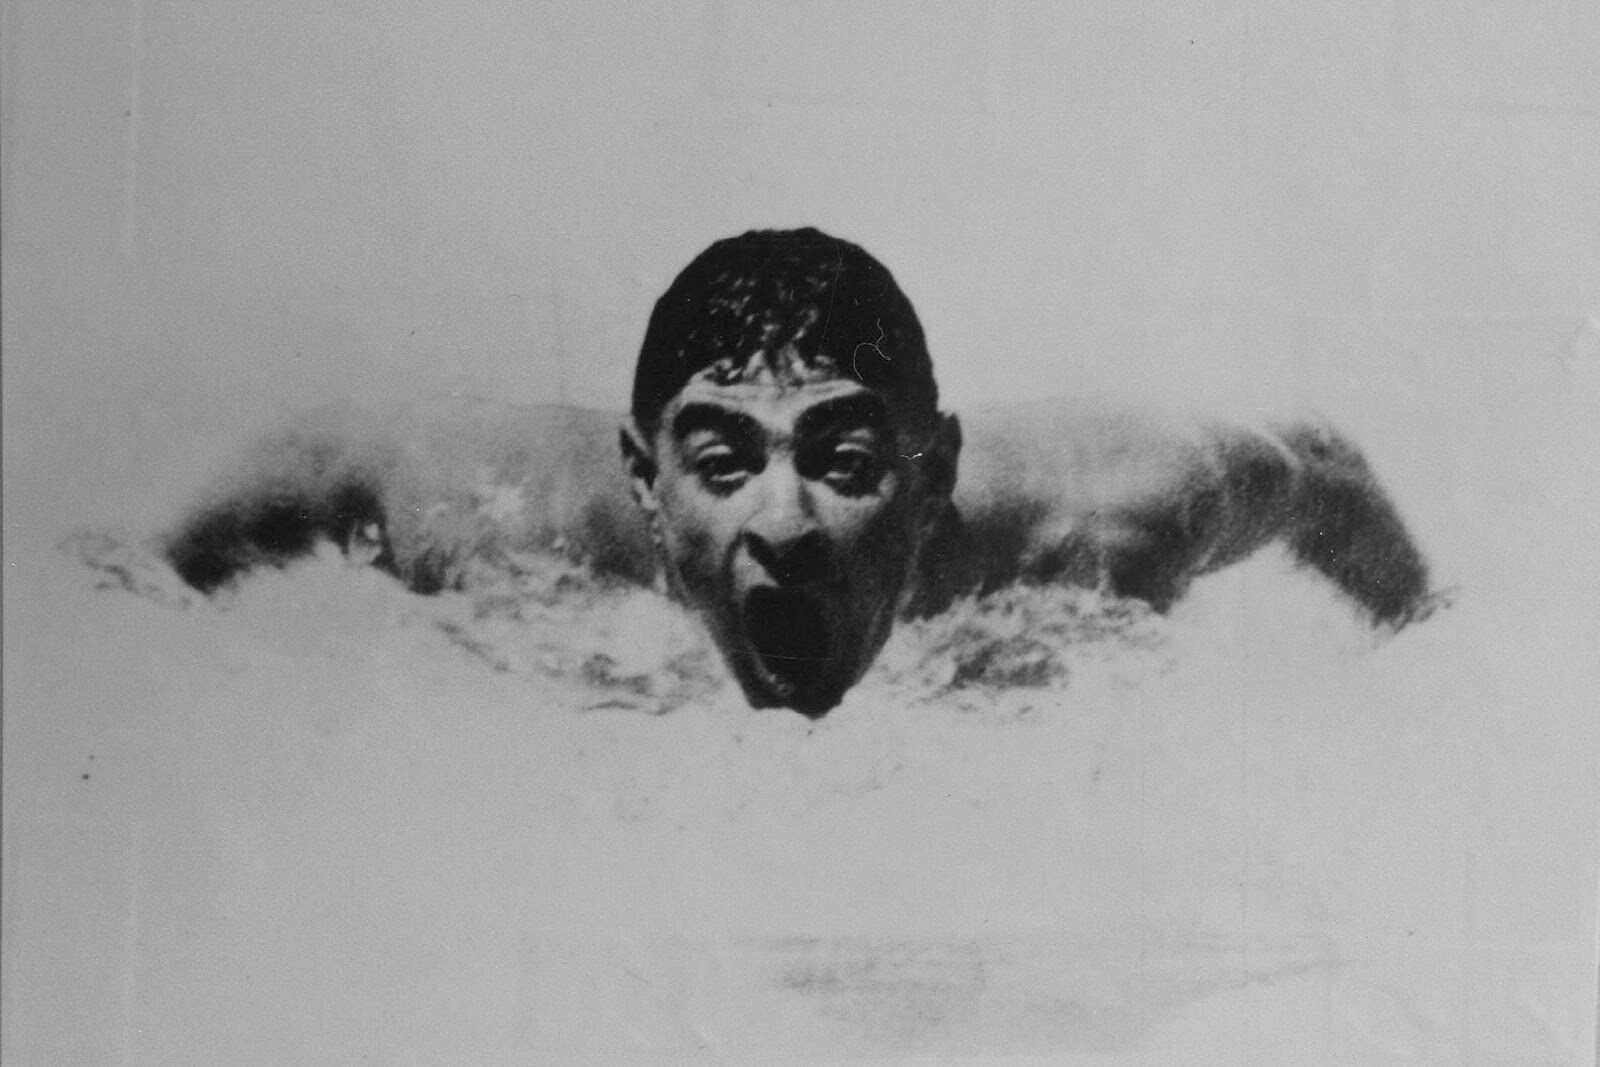 Olympic swimmer Alfred Nakache in action